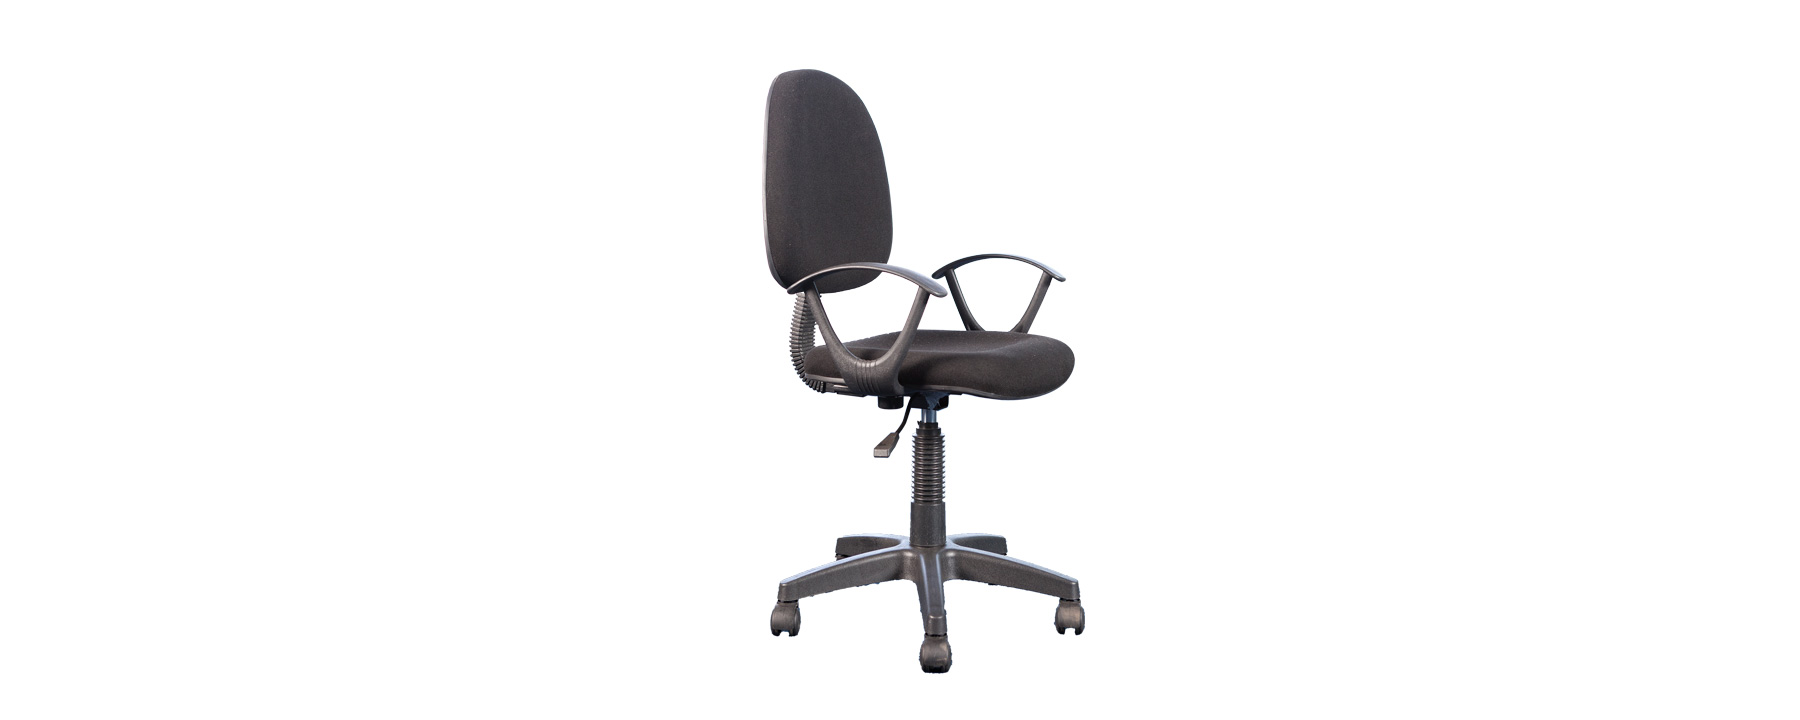 Office chairs in sri lanka - Clerical Chair